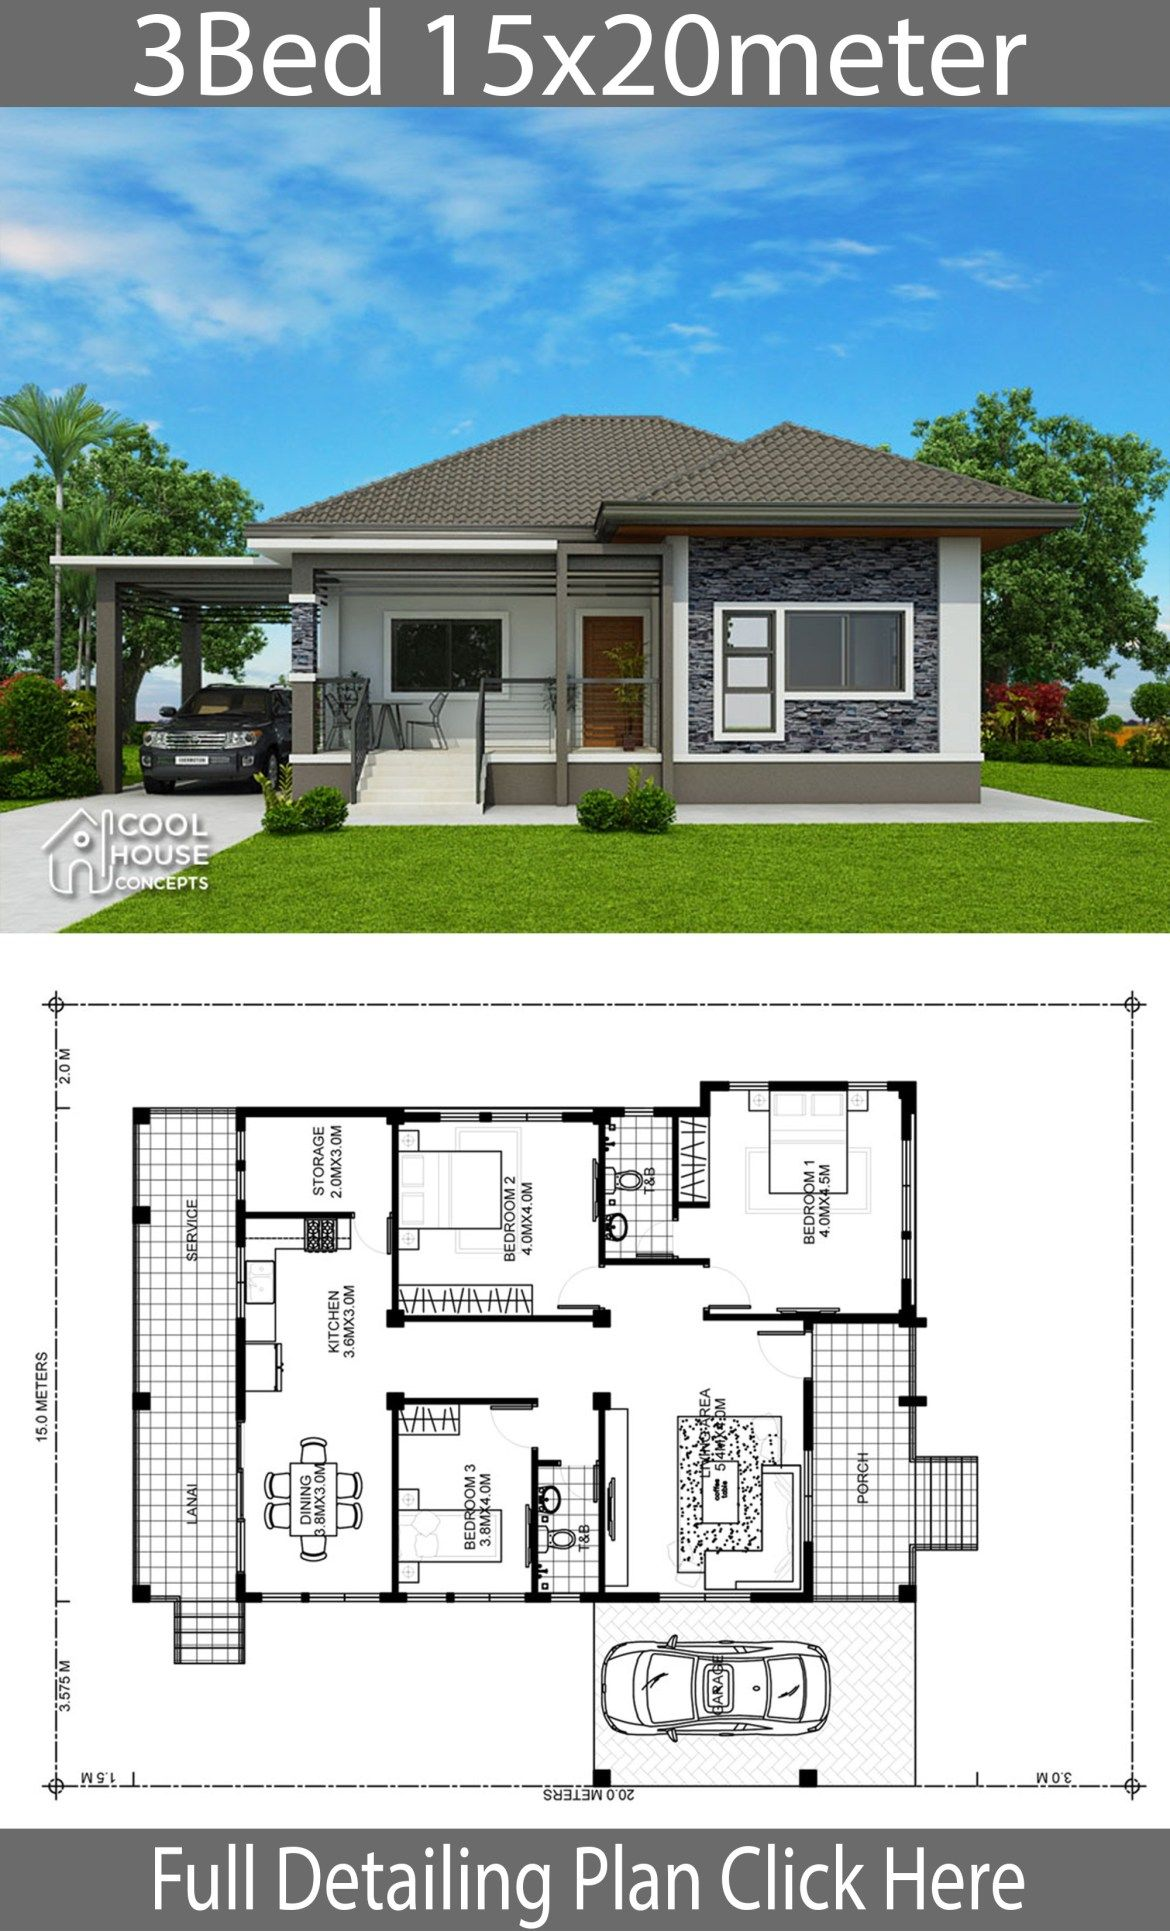 Home Design Plan 15x20m With 3 Bedrooms Home Planssearch